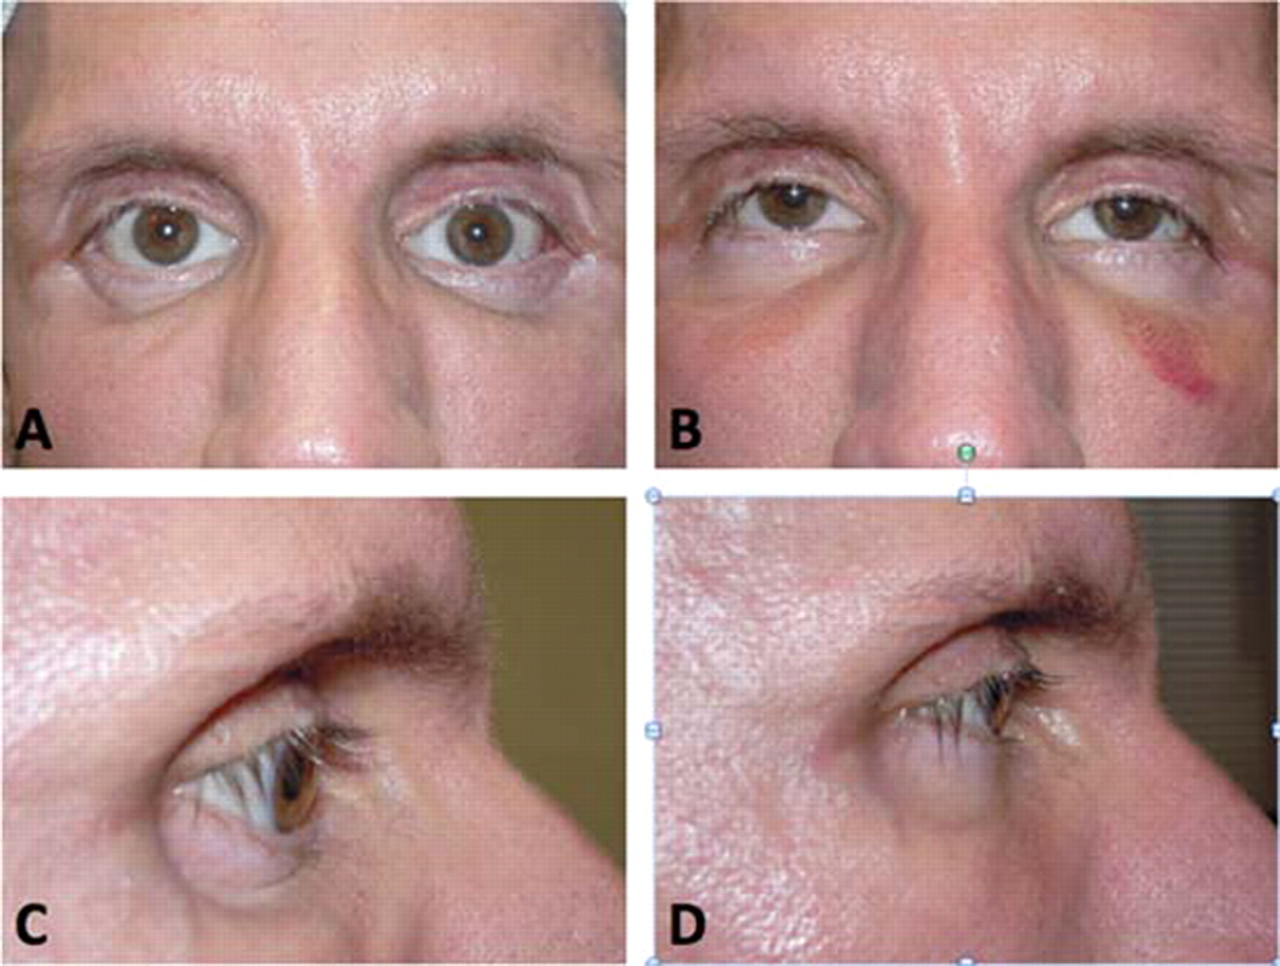 Severe enophthalmos and lagophthalmos secondary to HIV